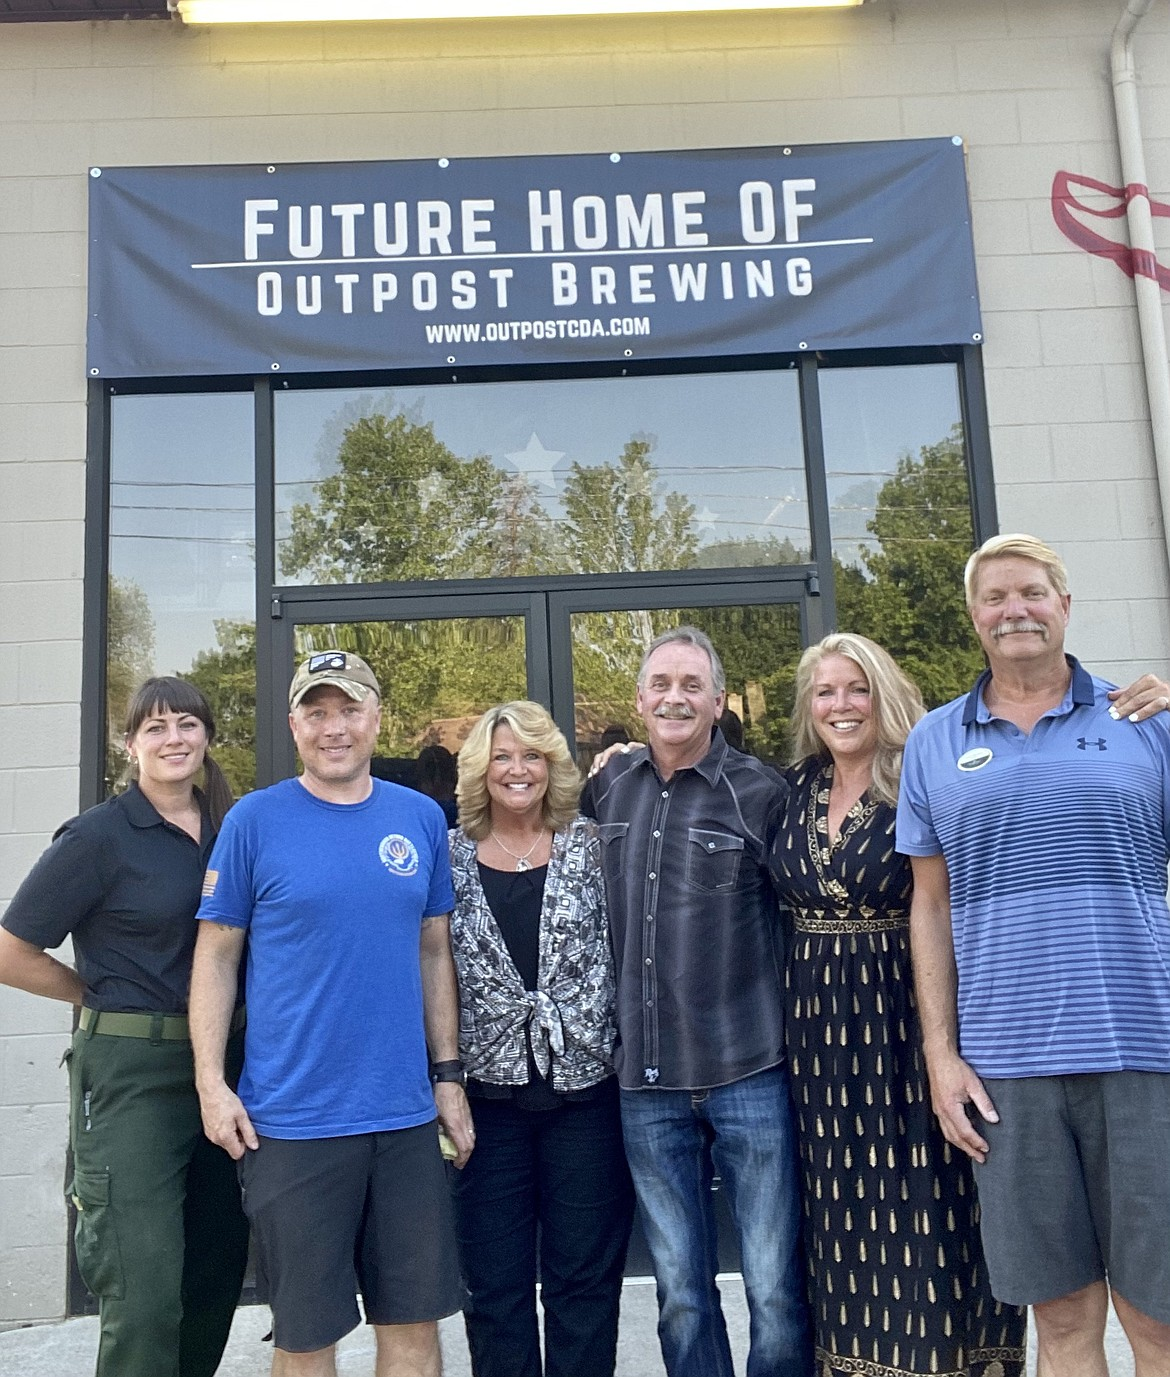 Courtesy photo From left, Ashley McCarthy, Chris McCarthy, Michelle Ourada, Duke Ourada, Tracey Tindall and John Tindall are the owners and partners of Outpost Brewing, 1710 N. Fourth St., Suite 115, in Coeur d'Alene.